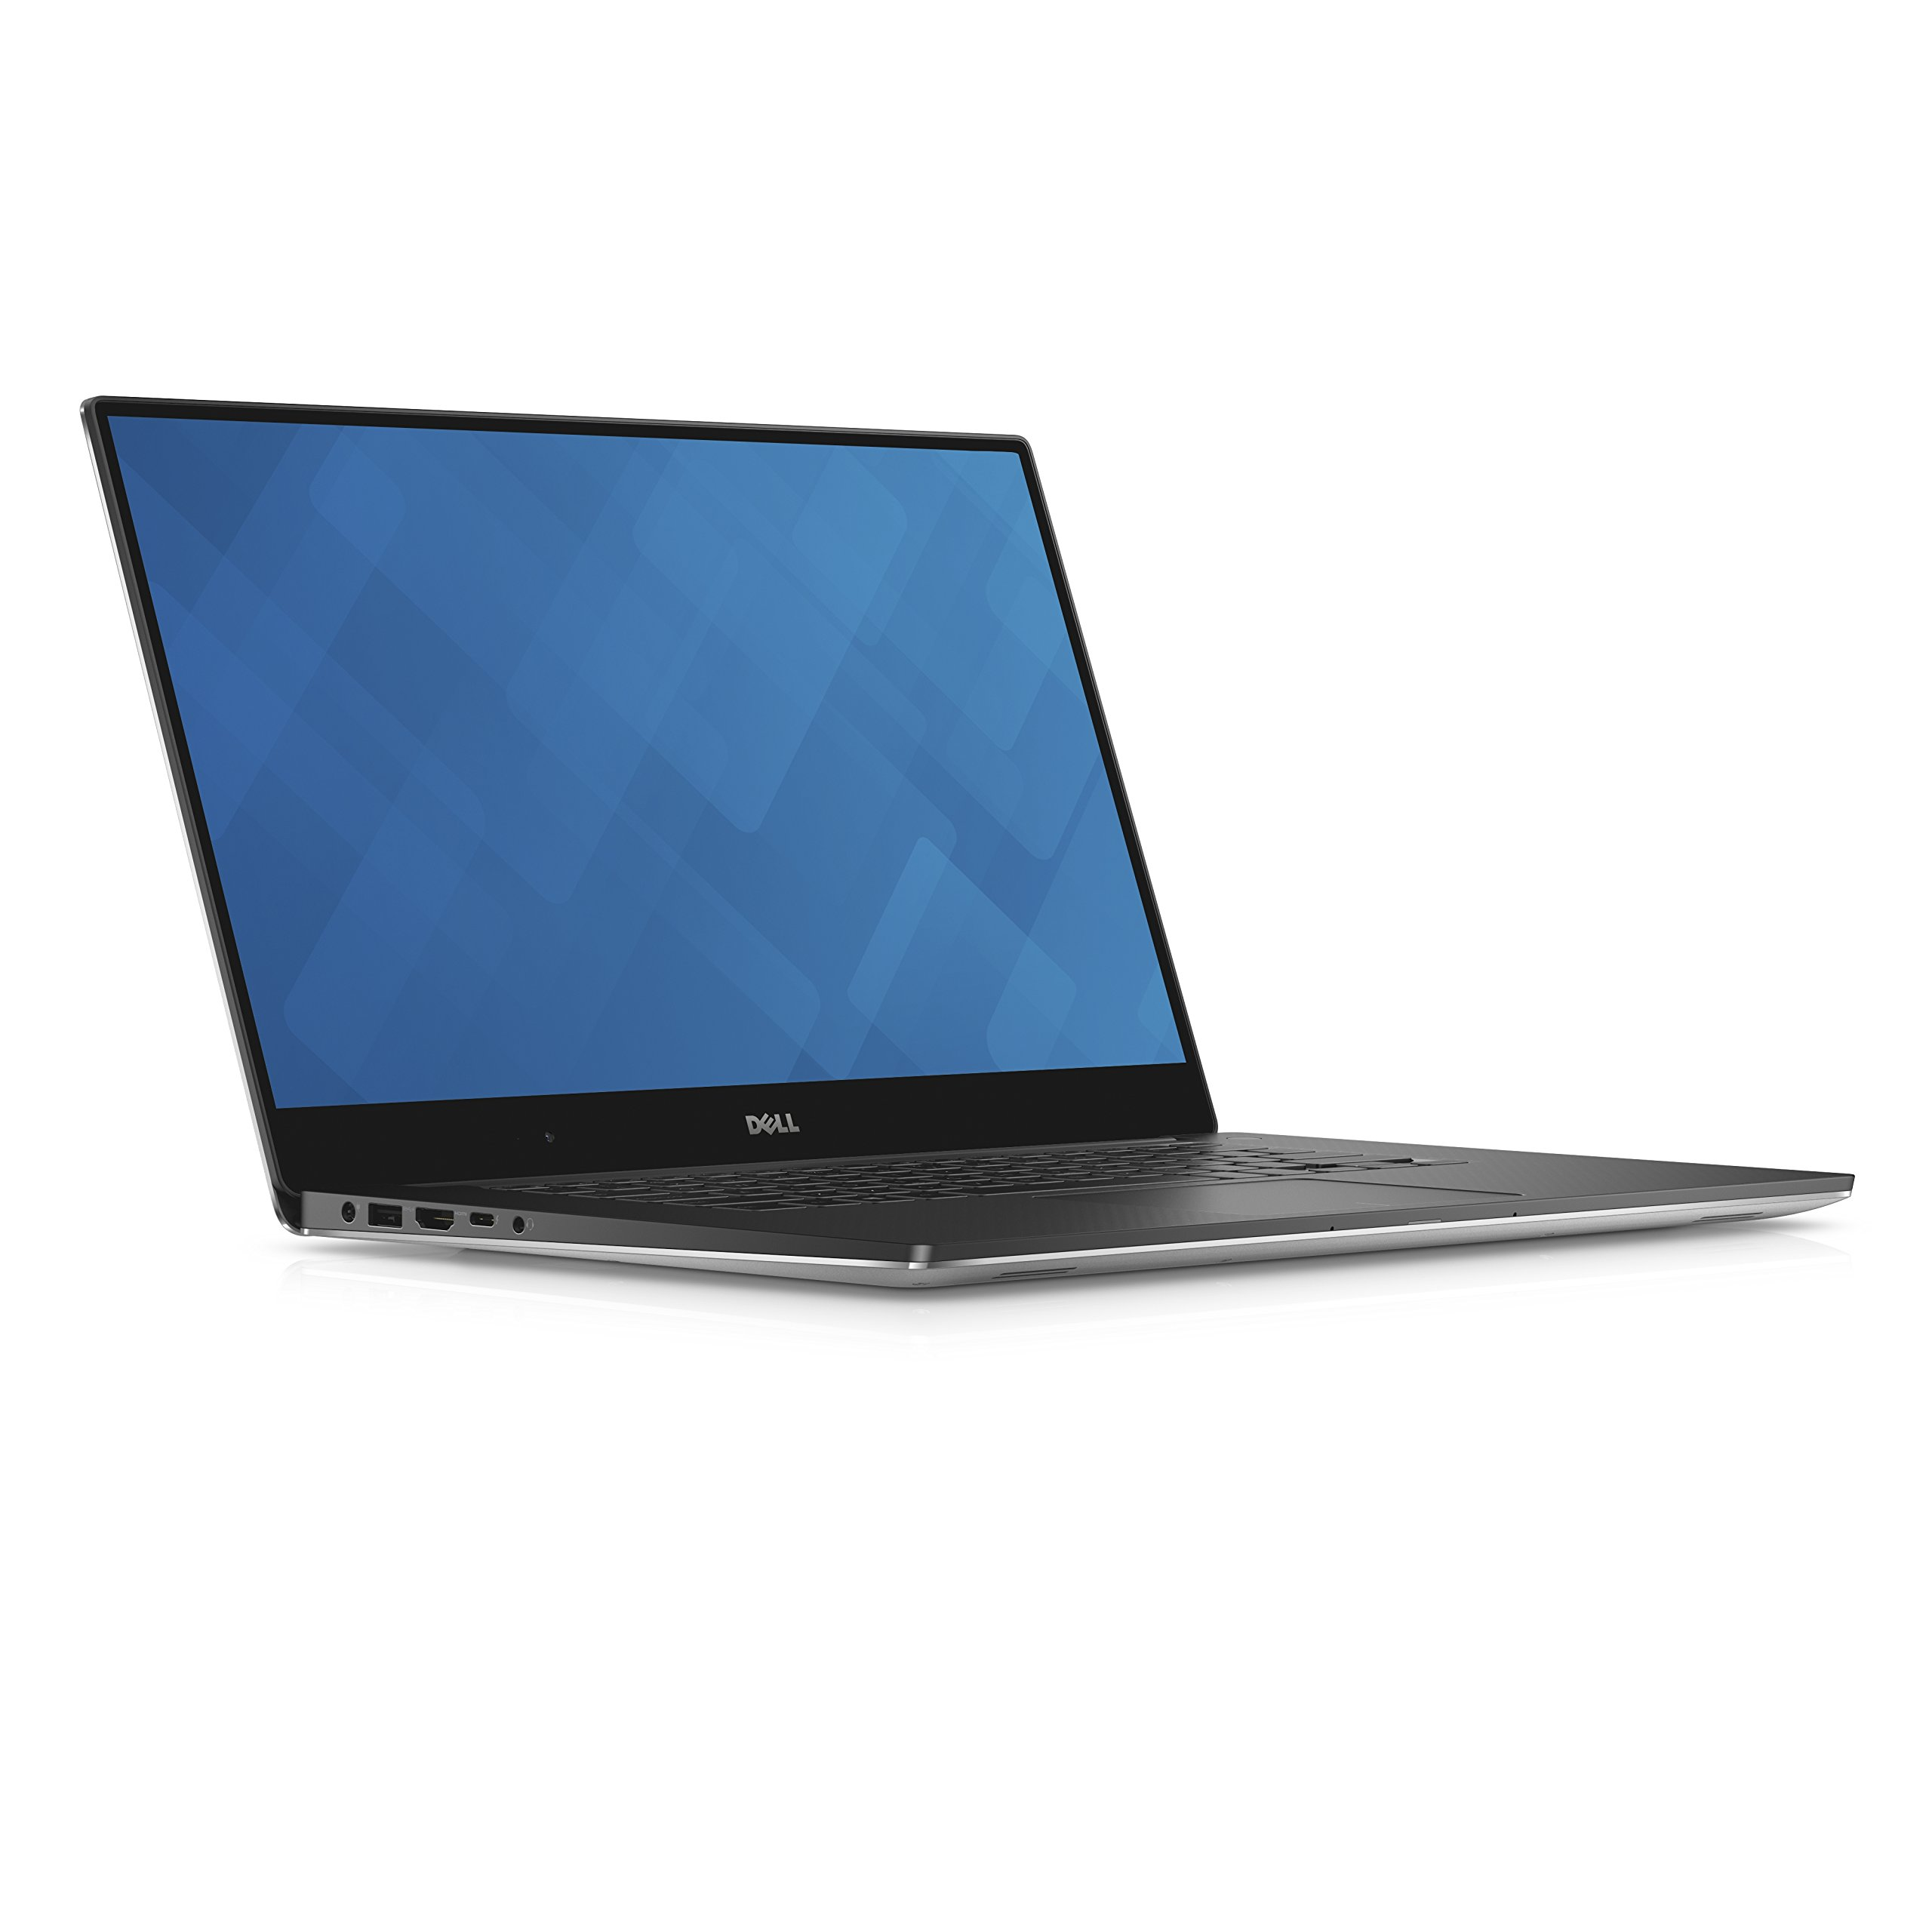 "Dell XPS 15 9560 Laptop - 0NK7T (15"" Display, i5-7300HQ 2.50GHz, 8GB DDR4, 1TB HDD, 32GB SSD, GTX 1050, Thunderbolt 3, Backlit Keyboard, Windows 10 Pro 64)"